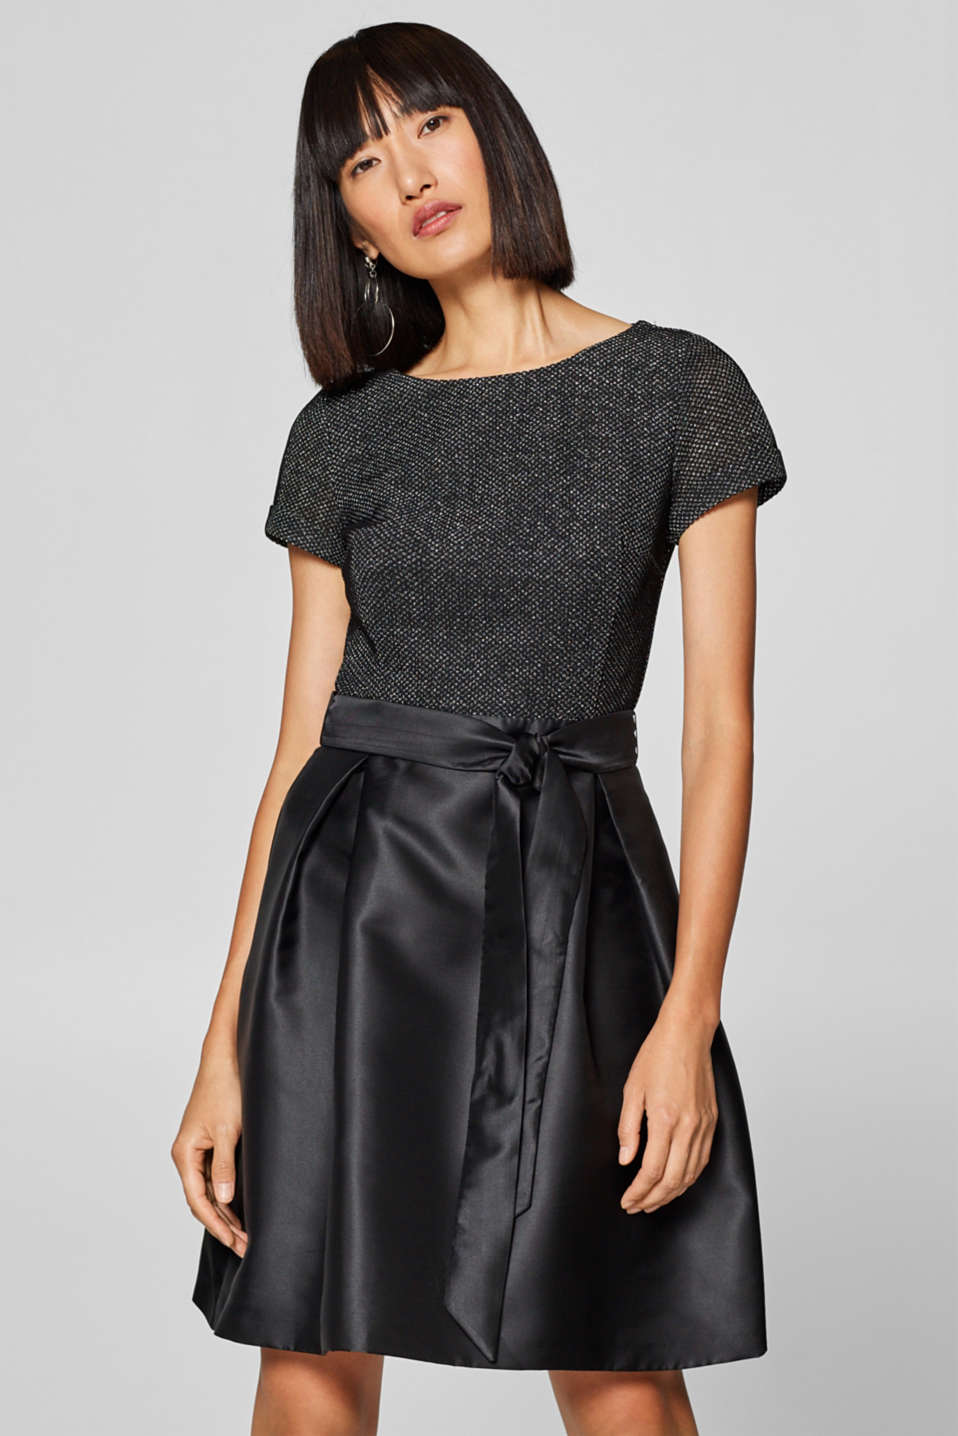 Esprit - Dress with glitter top and taffeta skirt